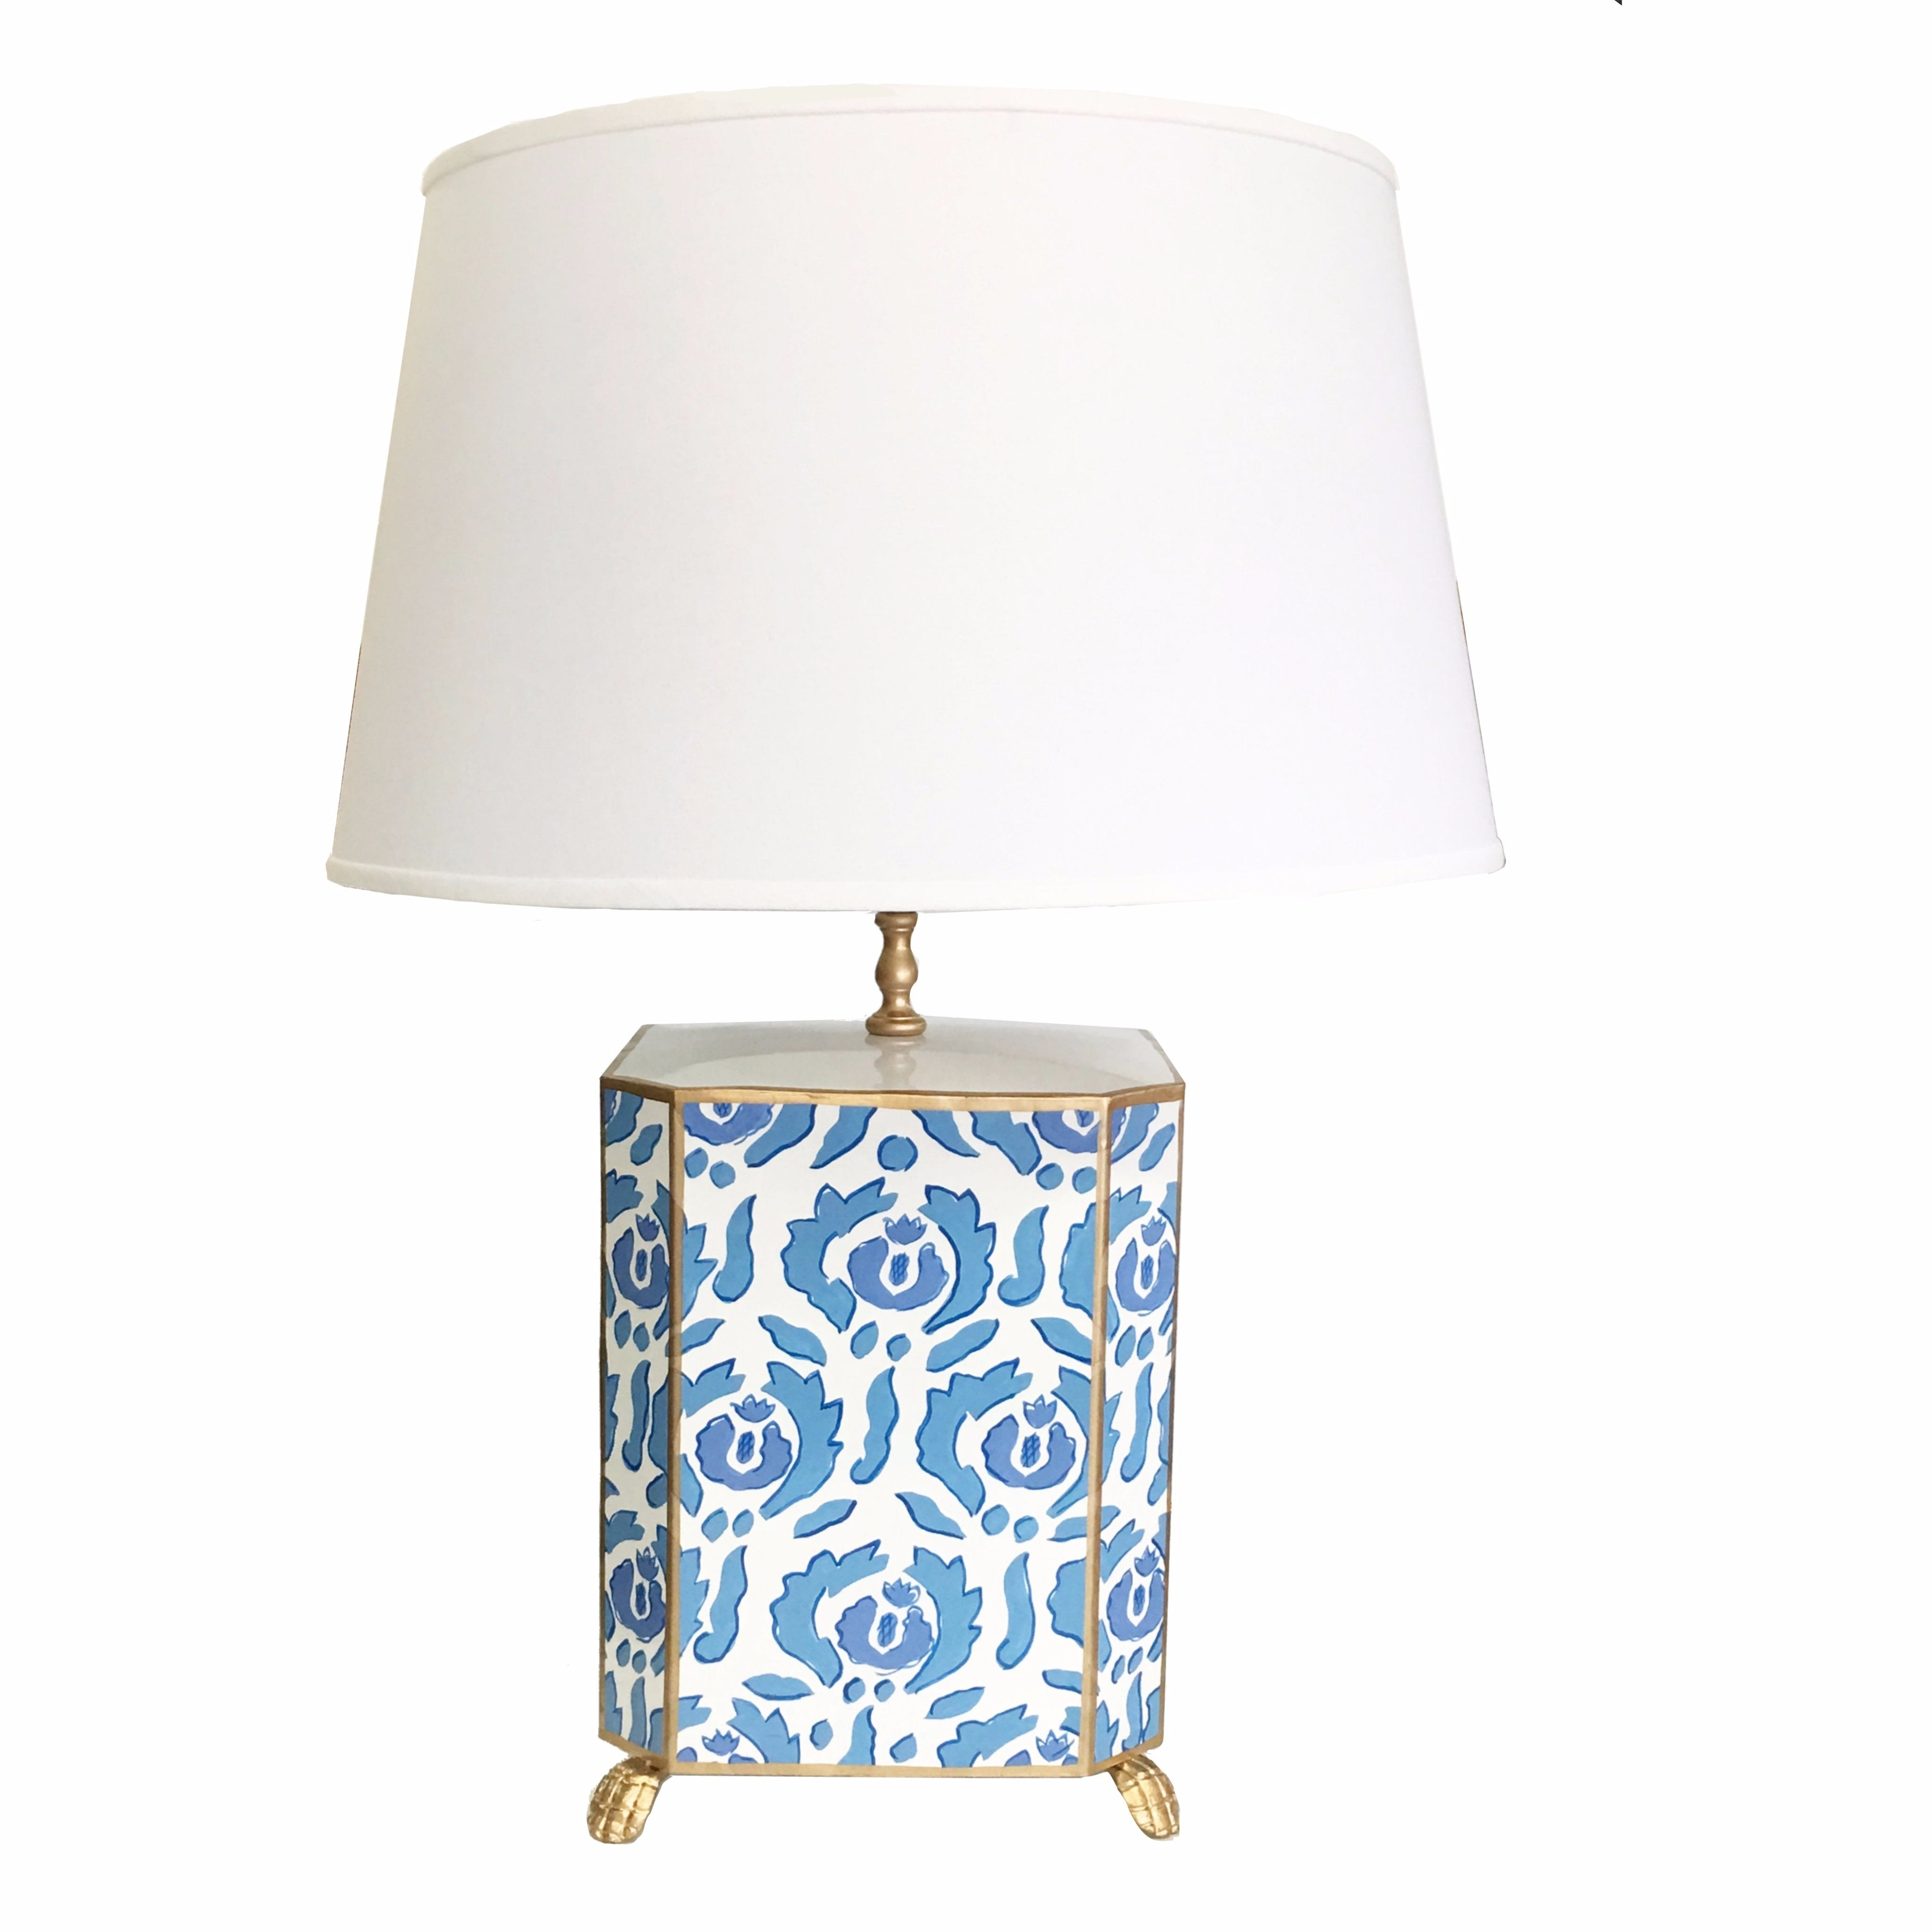 Beaufont Lamp in Blue